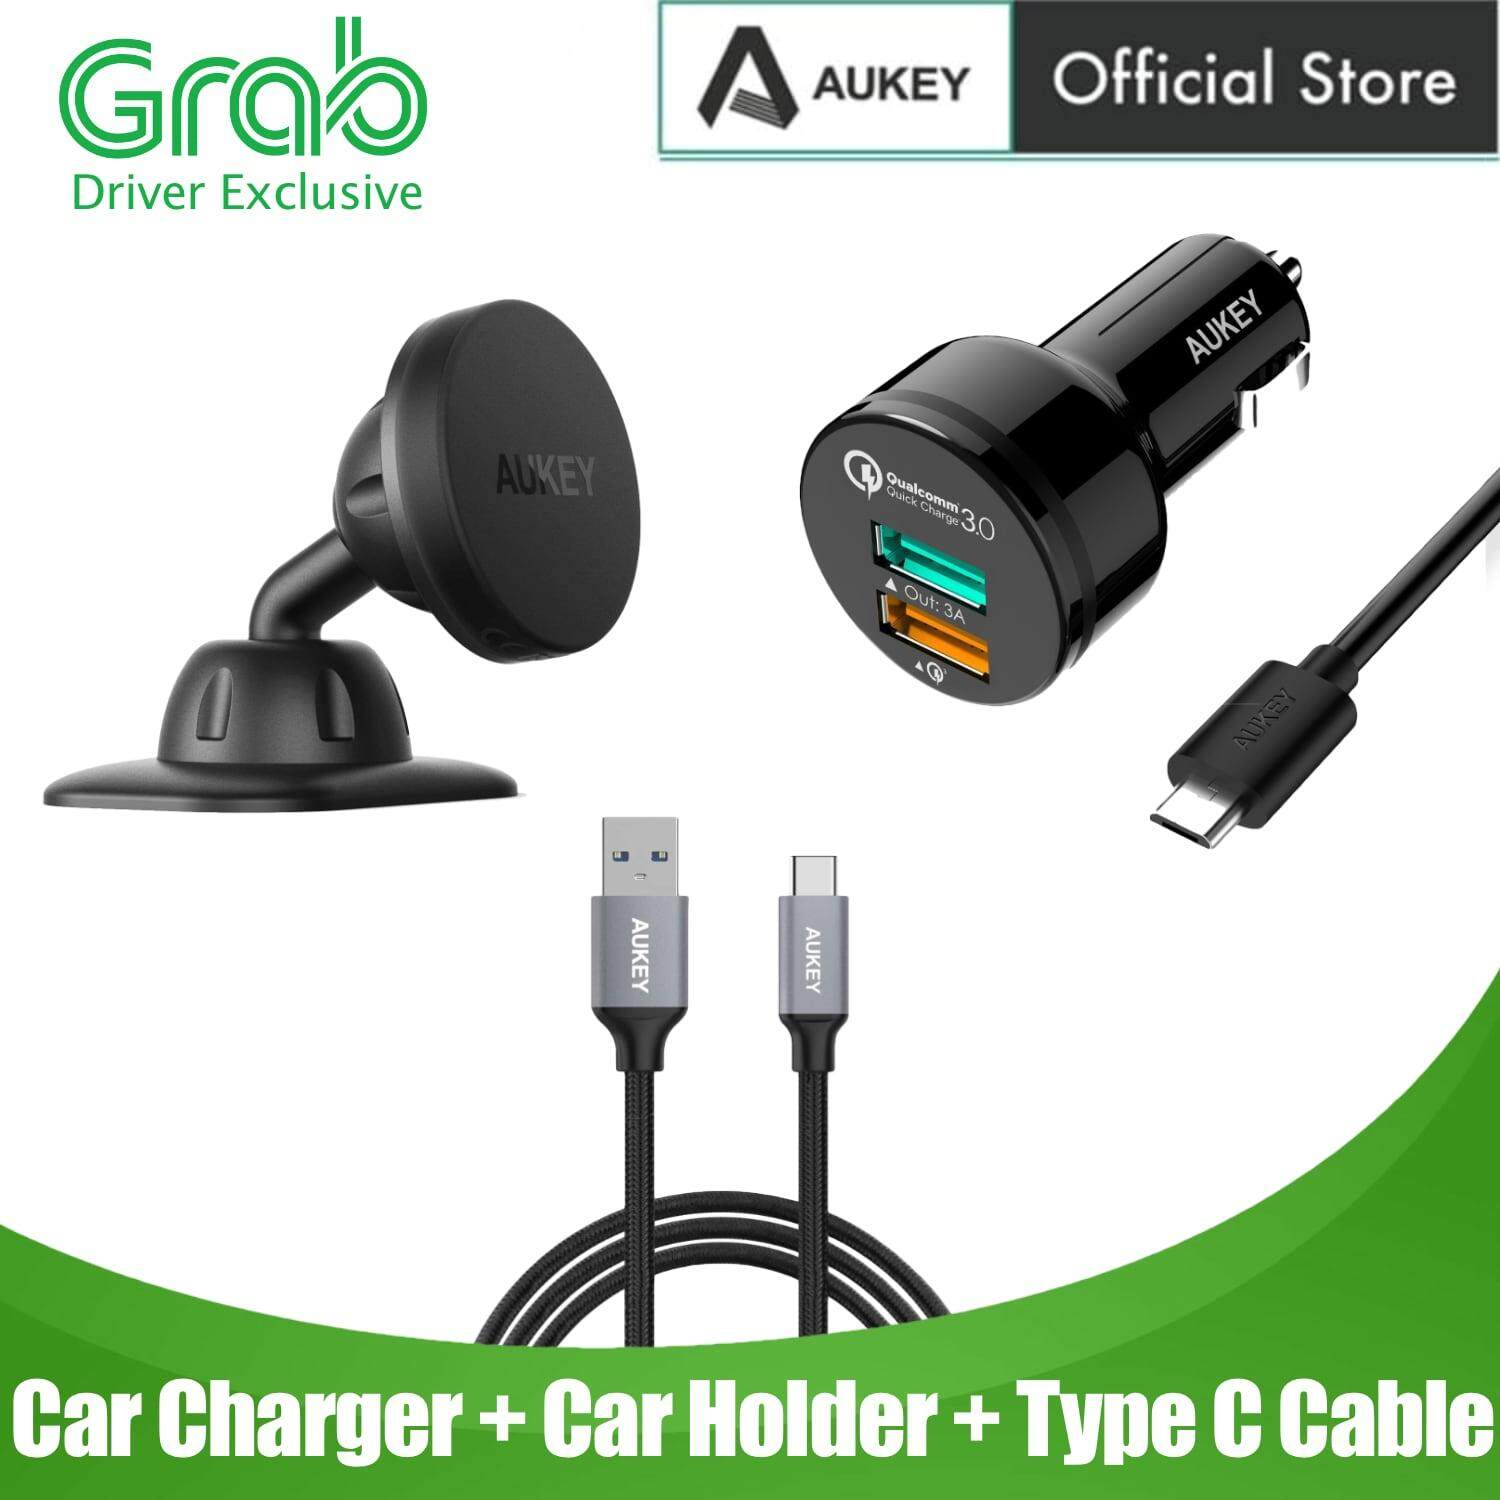 [GRAB DRIVER EXCLUSIVE] [3 IN 1 SET] Aukey CC-T7 Quick Charge 3.0 Car Charger With Type C Cable & Magnetic Car Holder